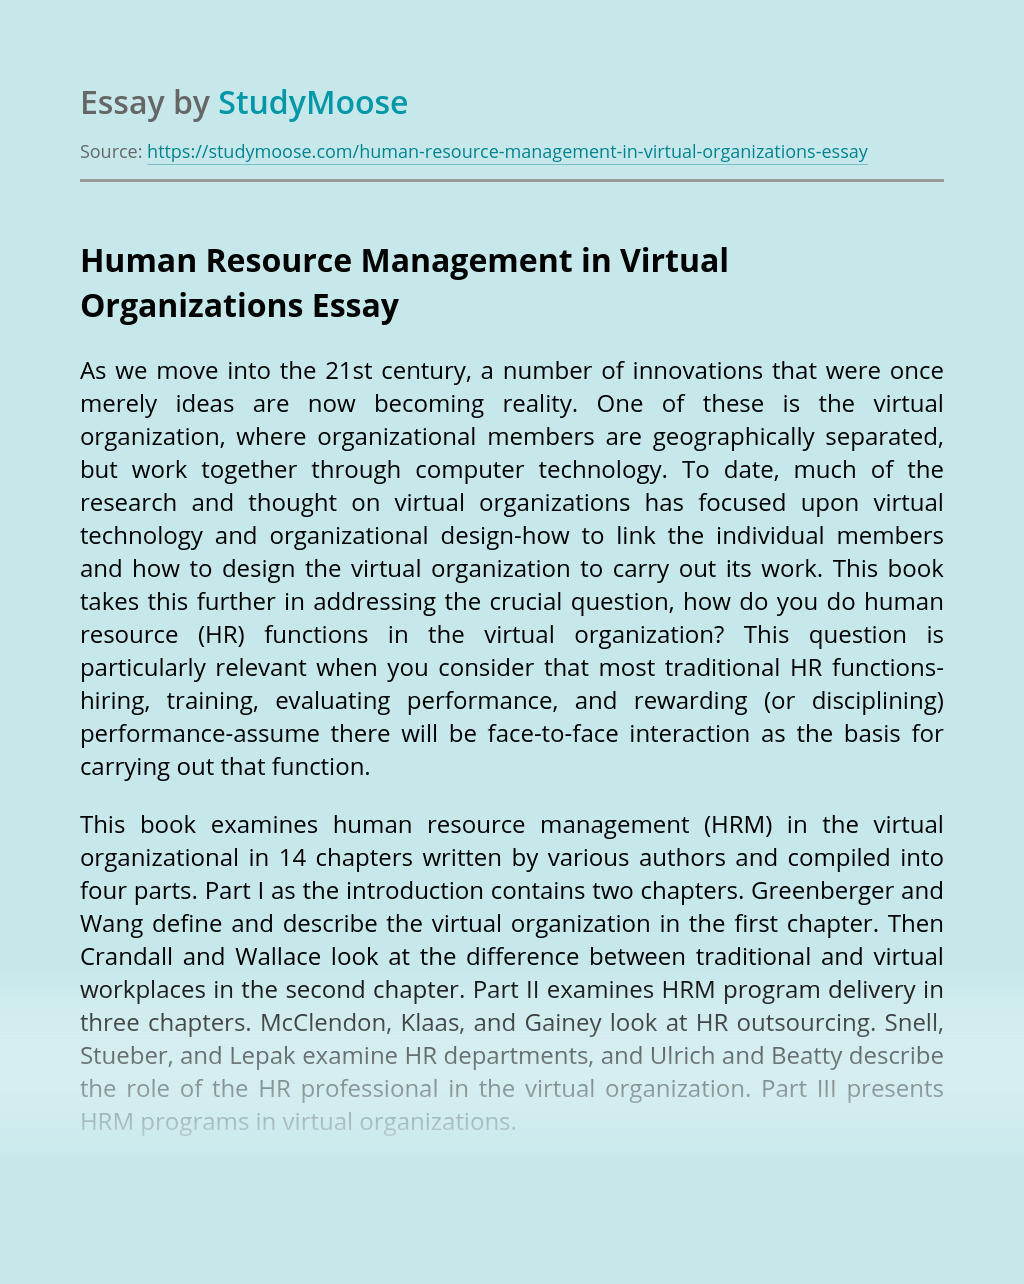 Human Resource Management in Virtual Organizations